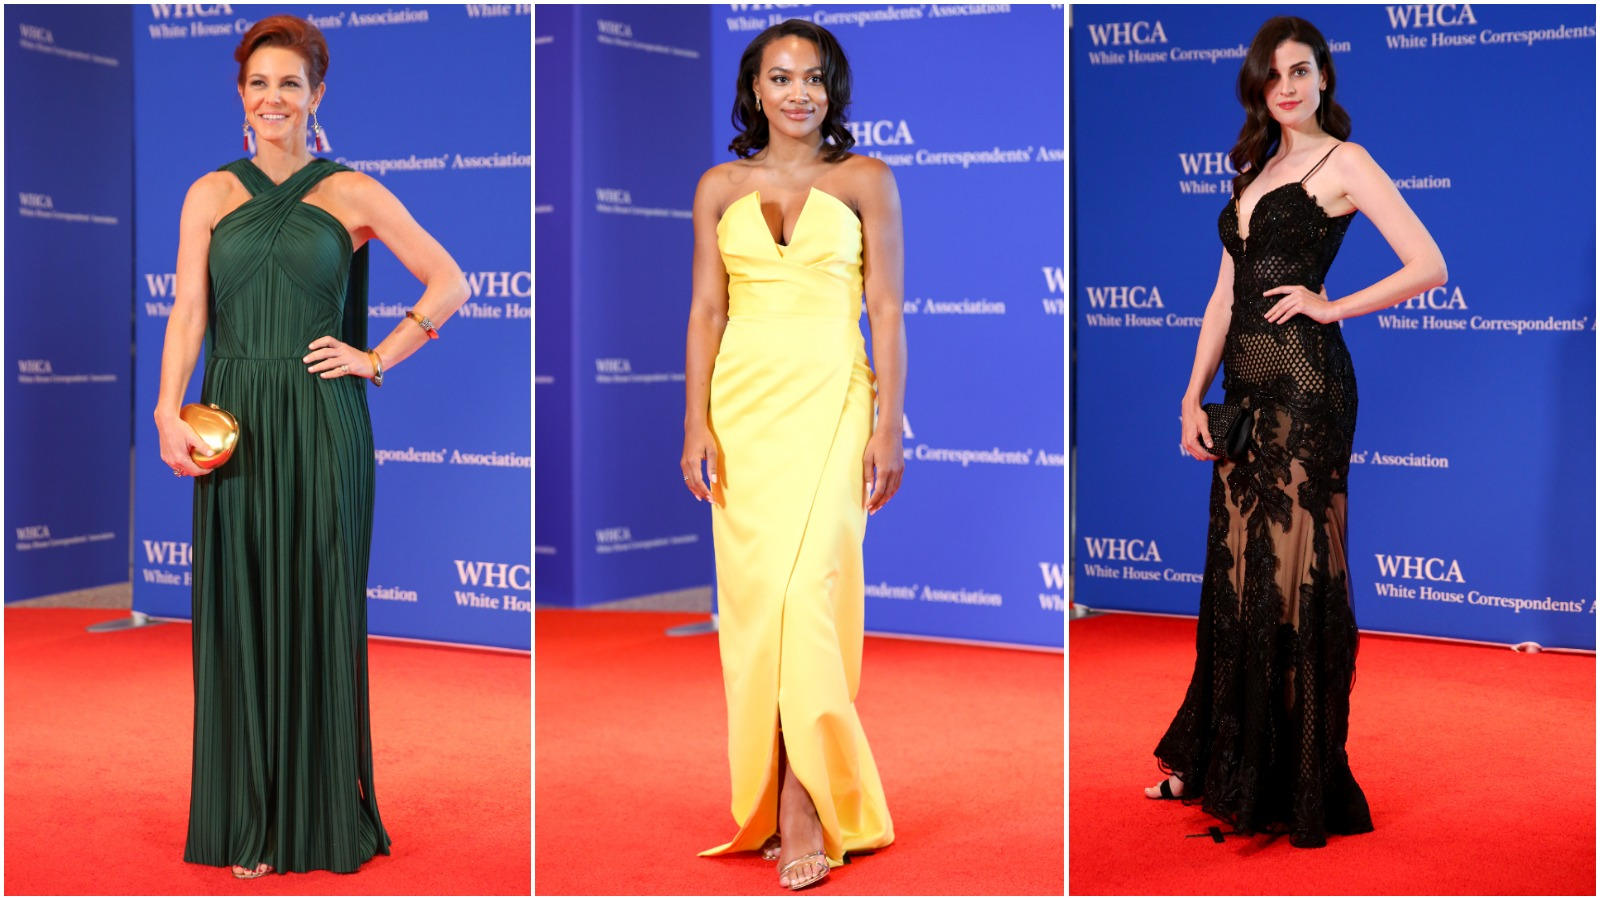 From 4/20 festivities to the White House Correspondents' Dinner, there were plenty of opportunities to spot interesting looks around town this April. Here were some of our favorites this month. (Amanda Andrade-Rhoades/DC Refined)